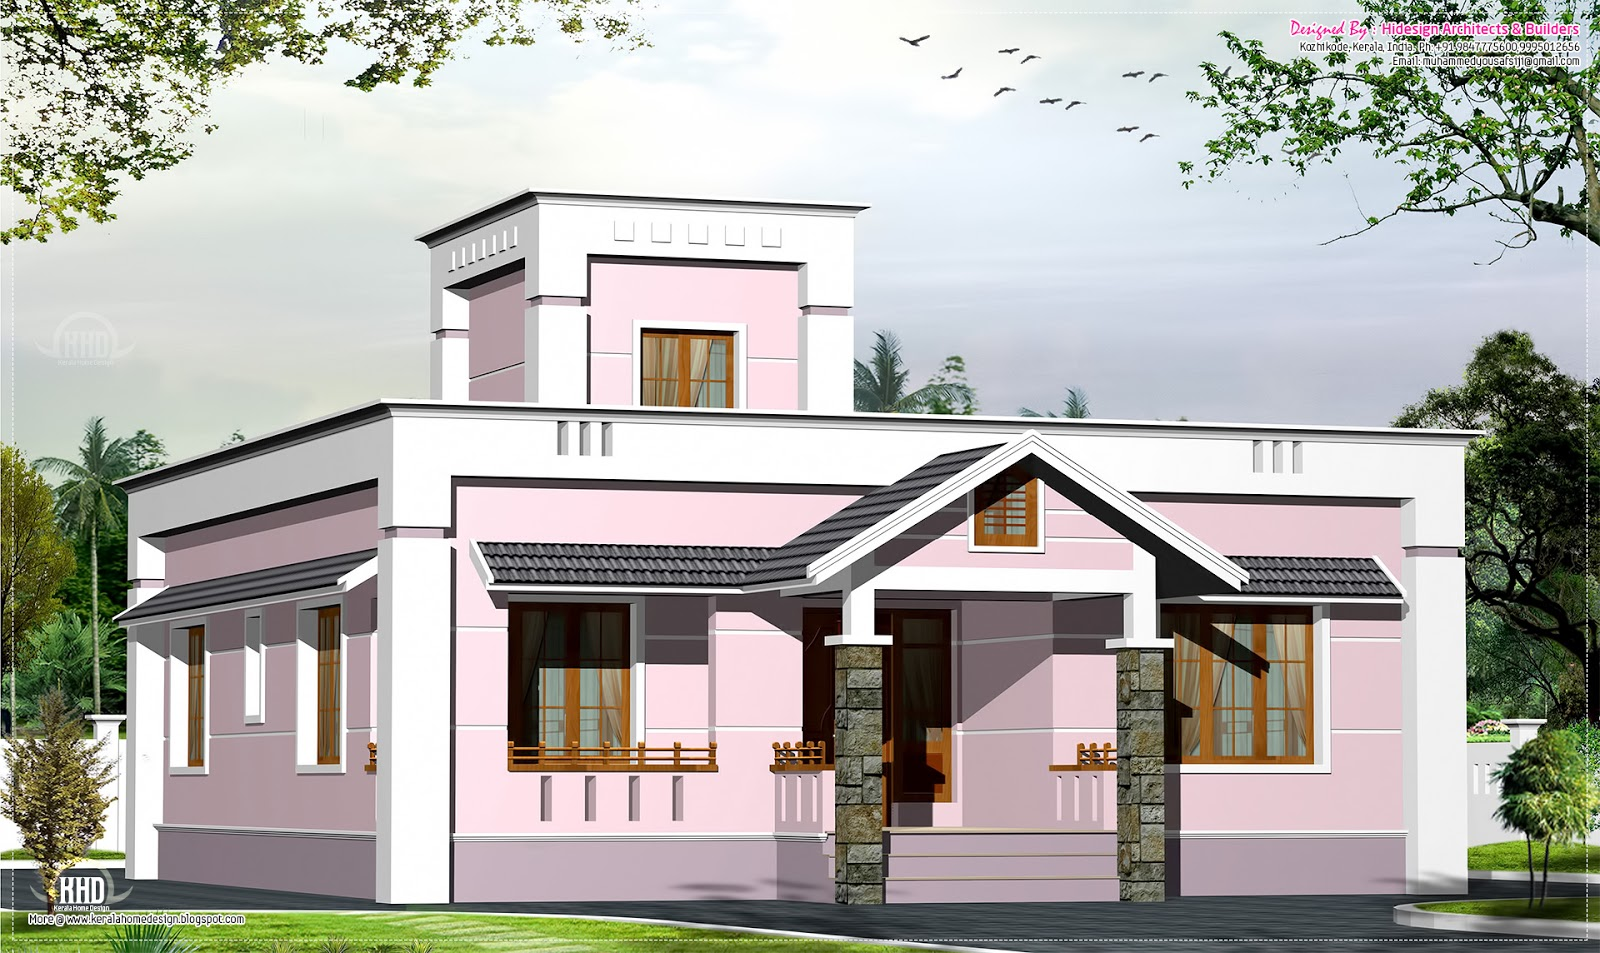 Small villa house plans india home design and style Indian villa floor plans